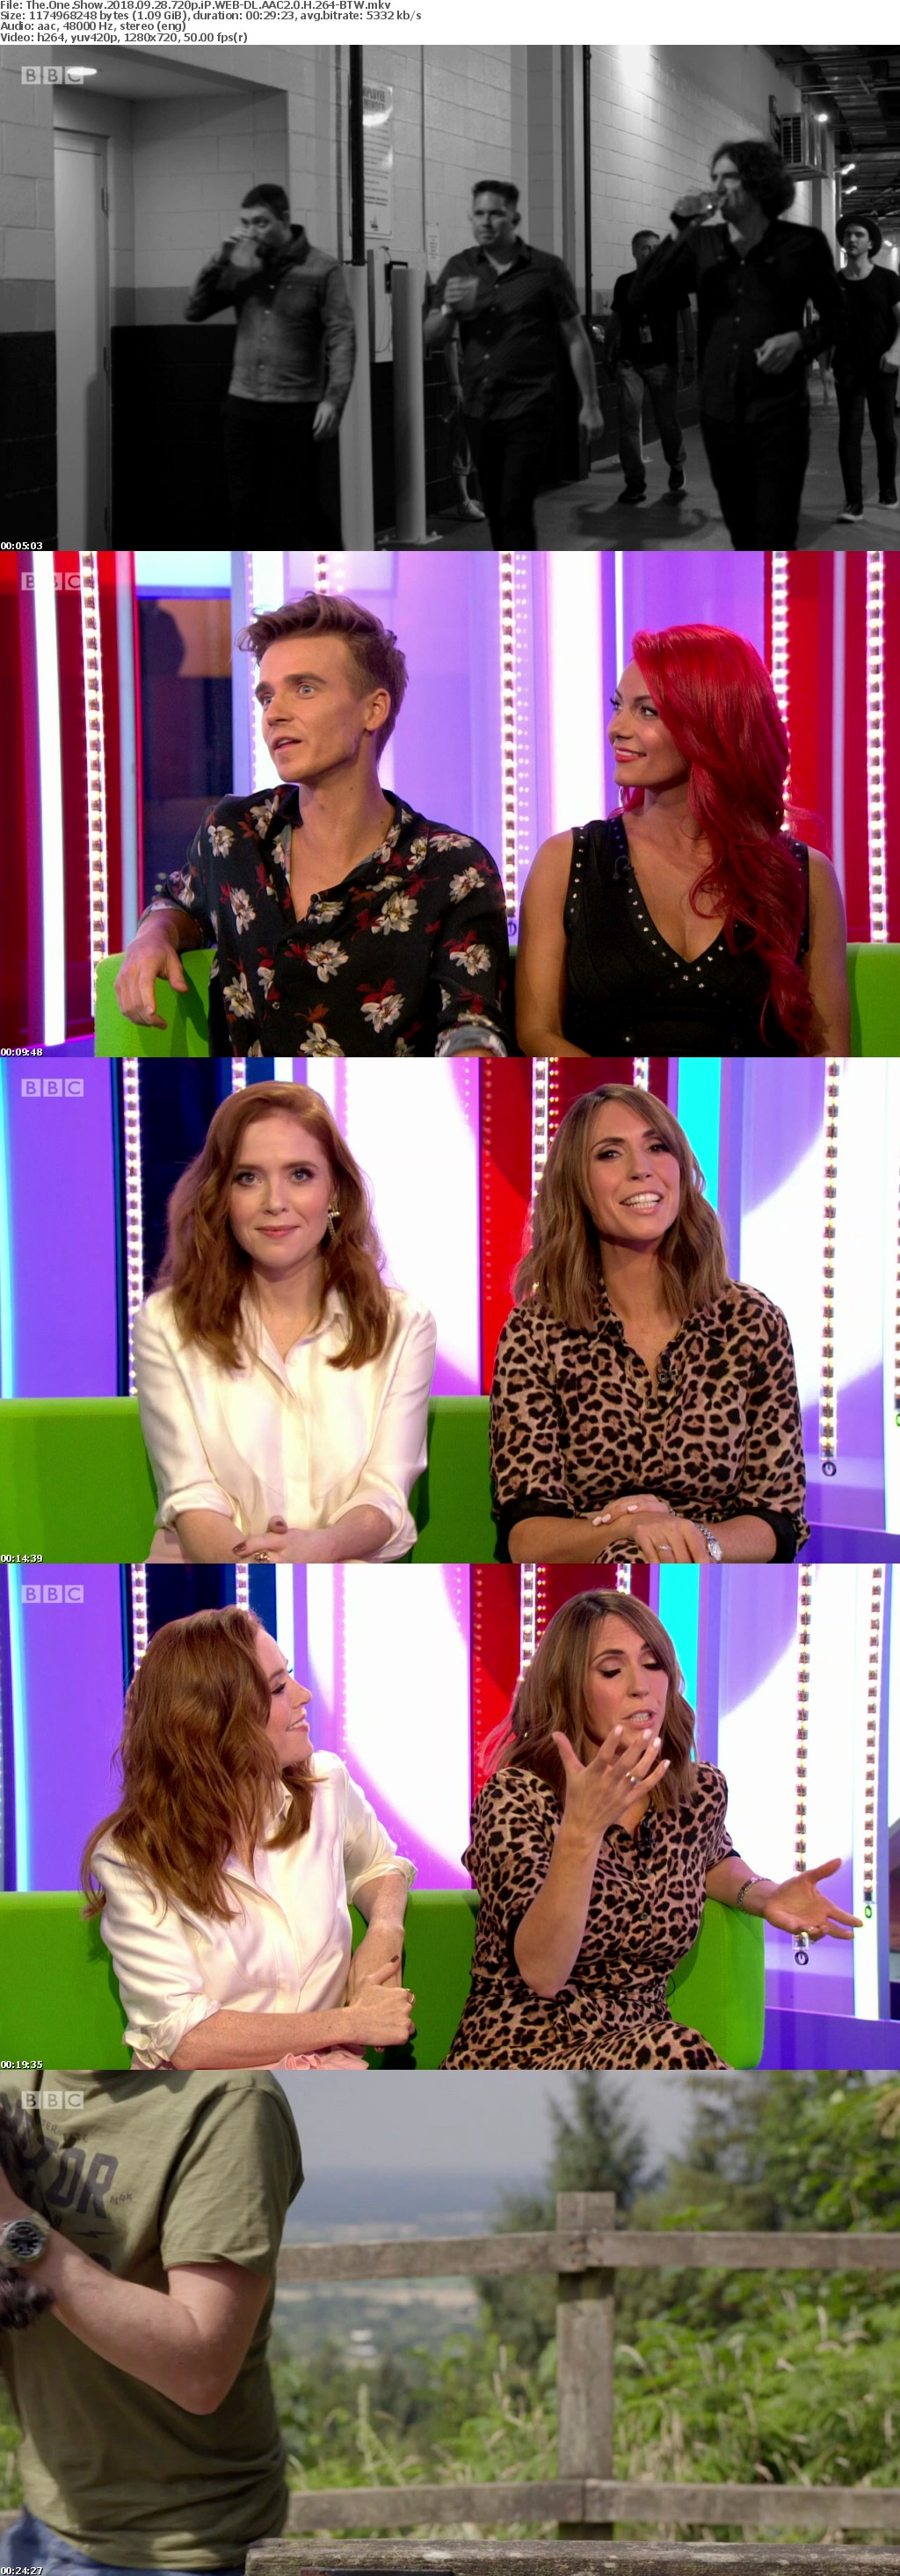 The One Show 2018 09 28 720p iP WEB-DL AAC2 0 H 264-BTW